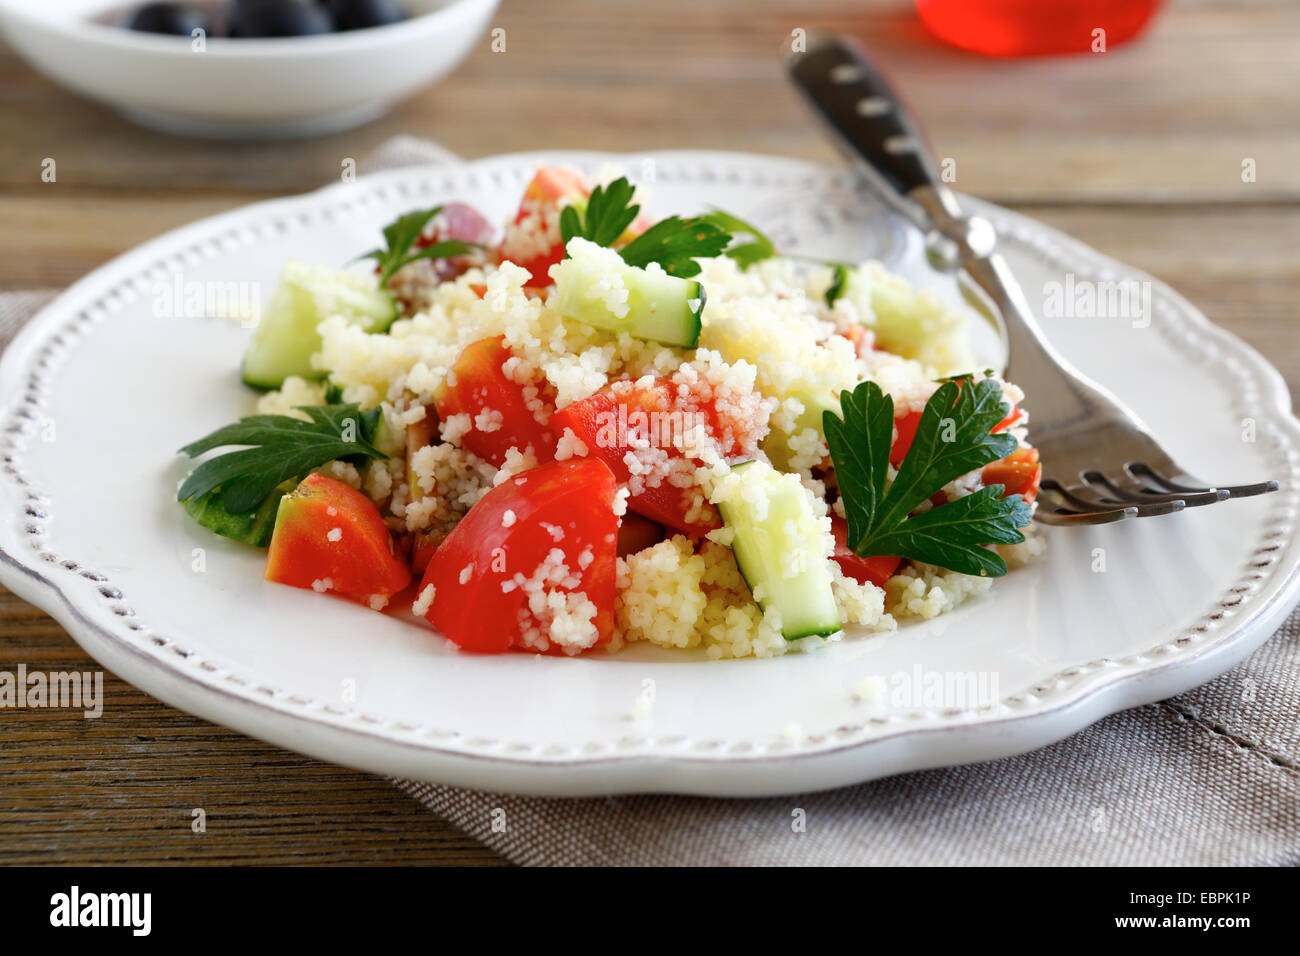 Salad with arabic couscous and vegetables on a white plate, healthy food - Stock Image